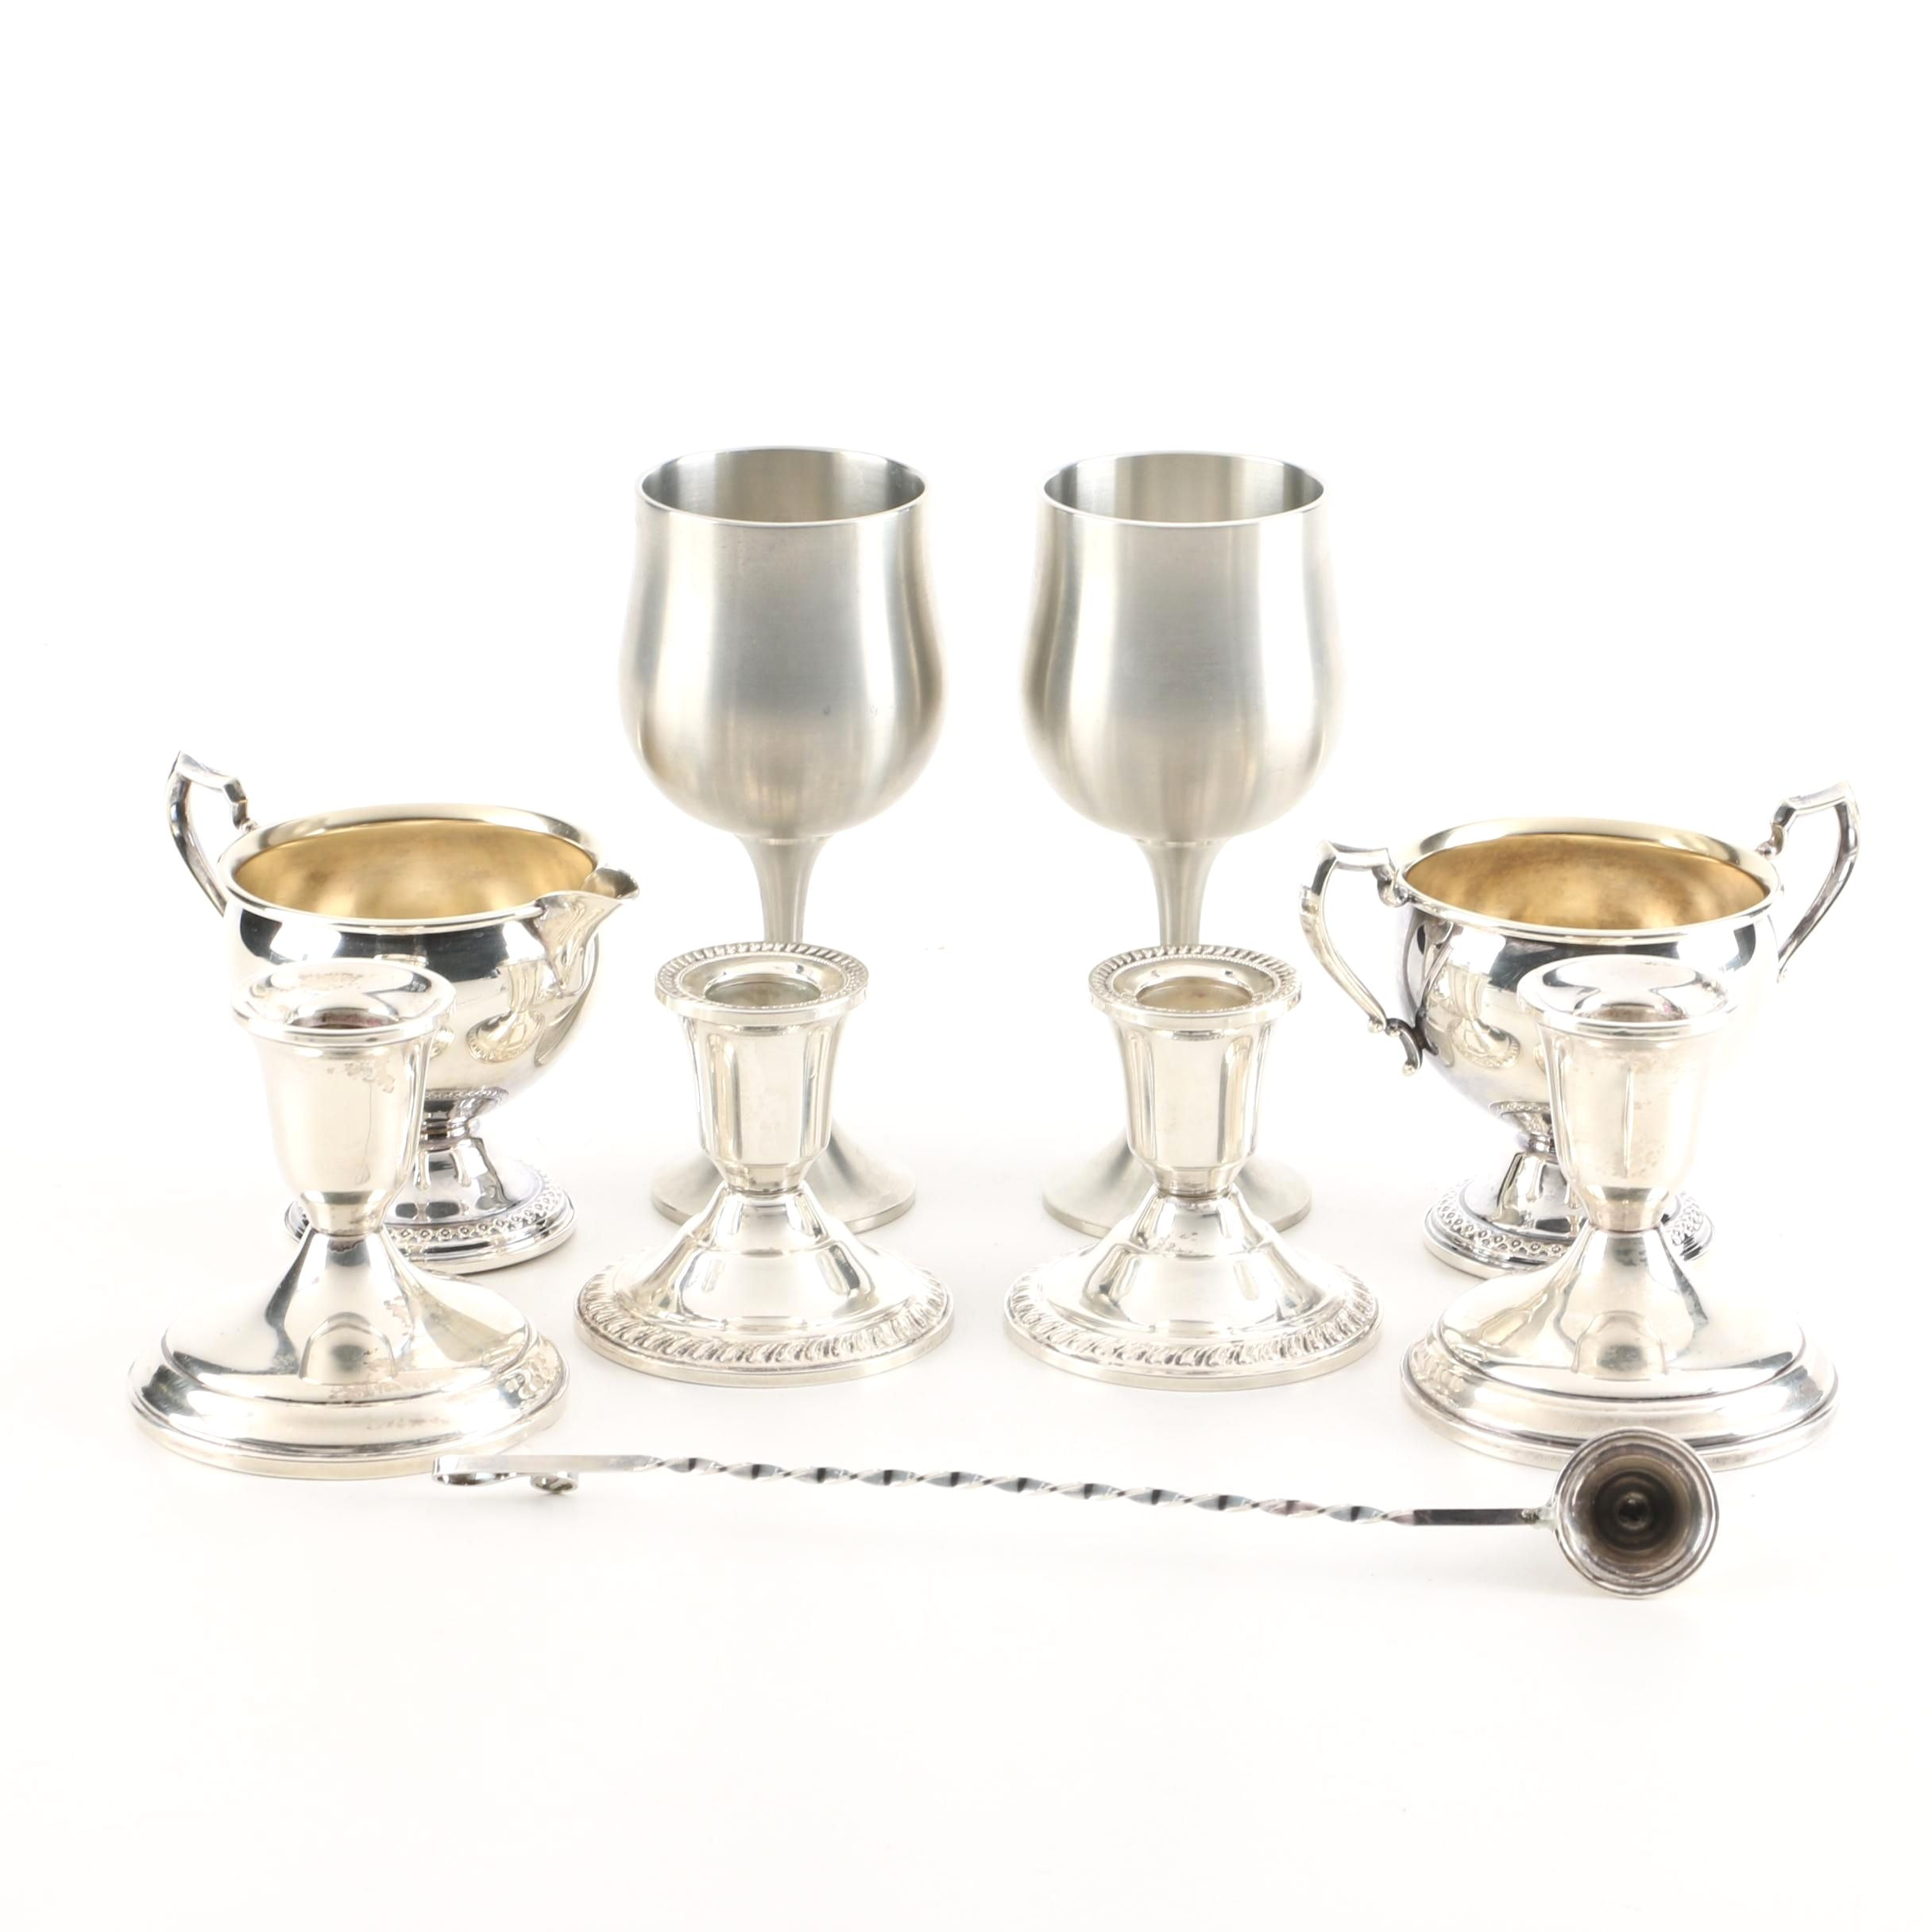 Weighted Sterling and Pewter Tableware Featuring Towle